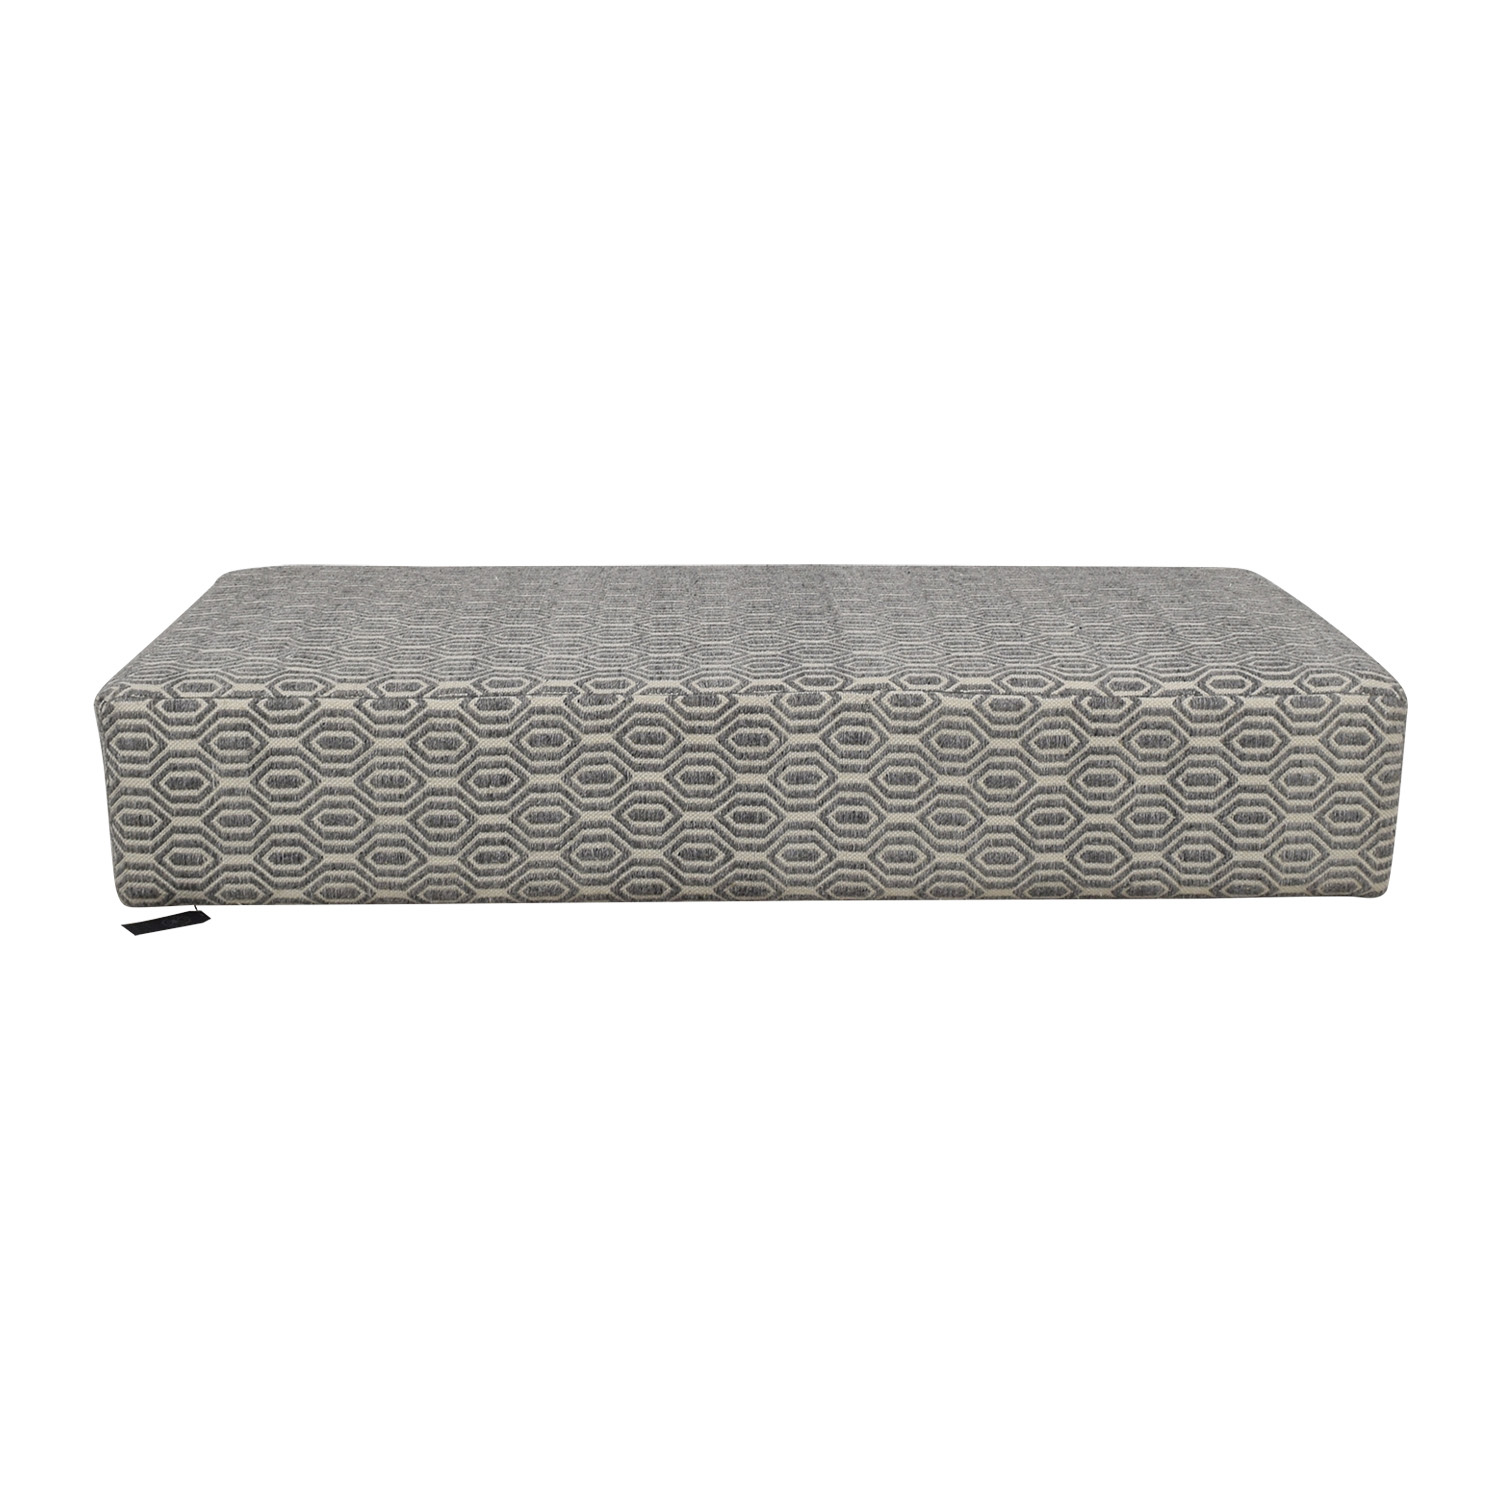 Manor and Mews Manor and Mews Grey and White Floor Sofa discount